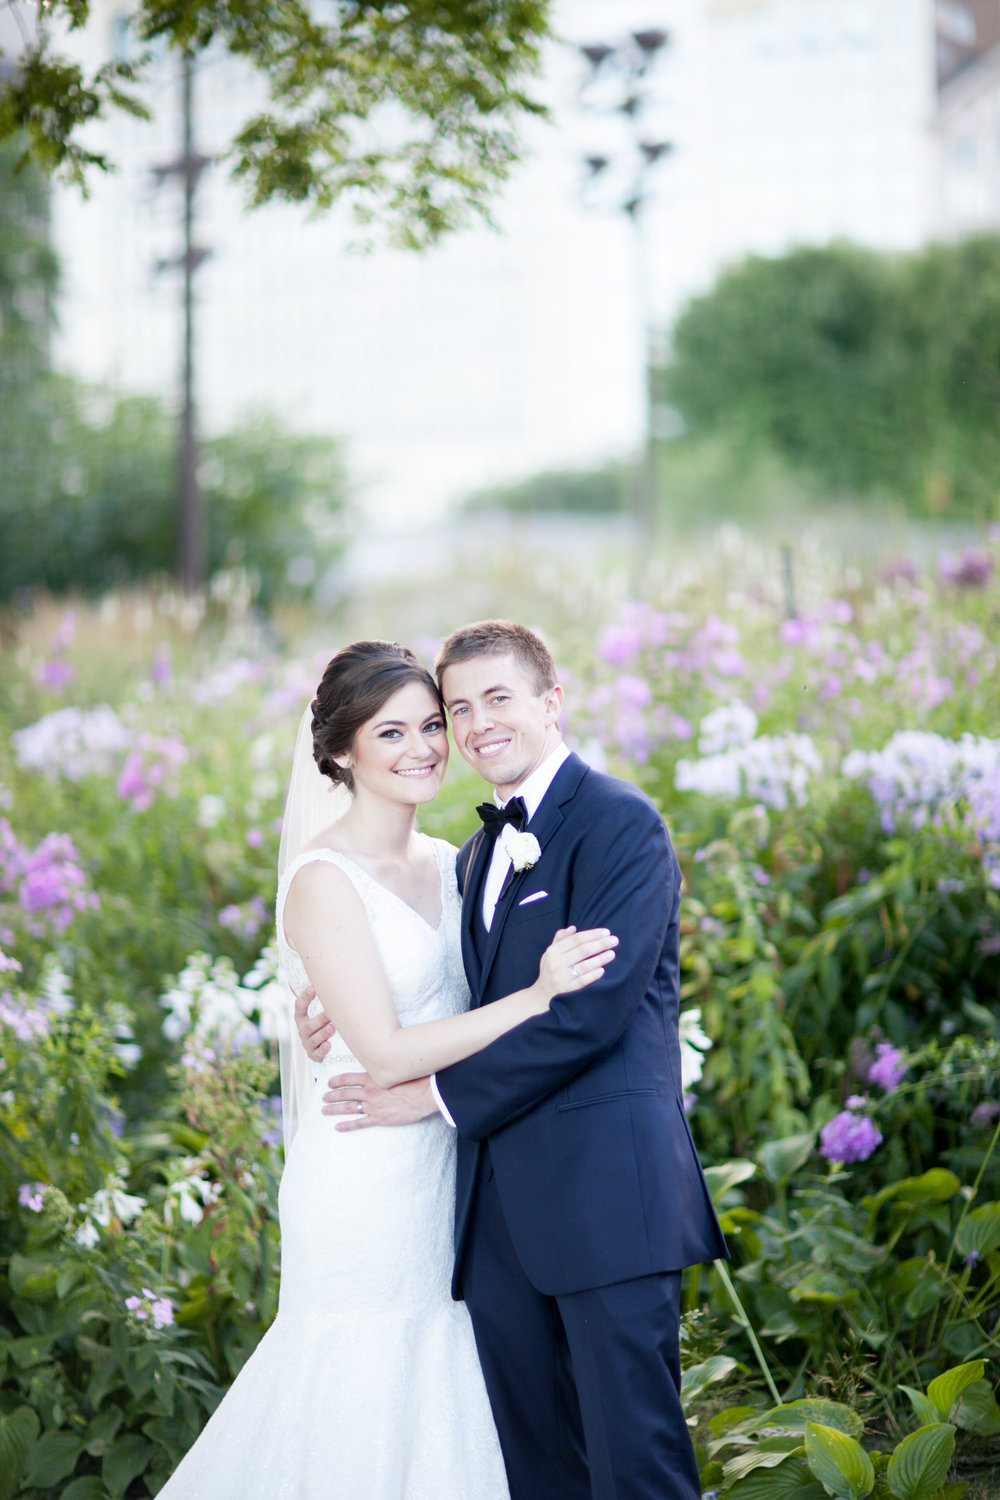 LisaDiederichPhotography_caitlin&caseywedding_blog-56.jpg